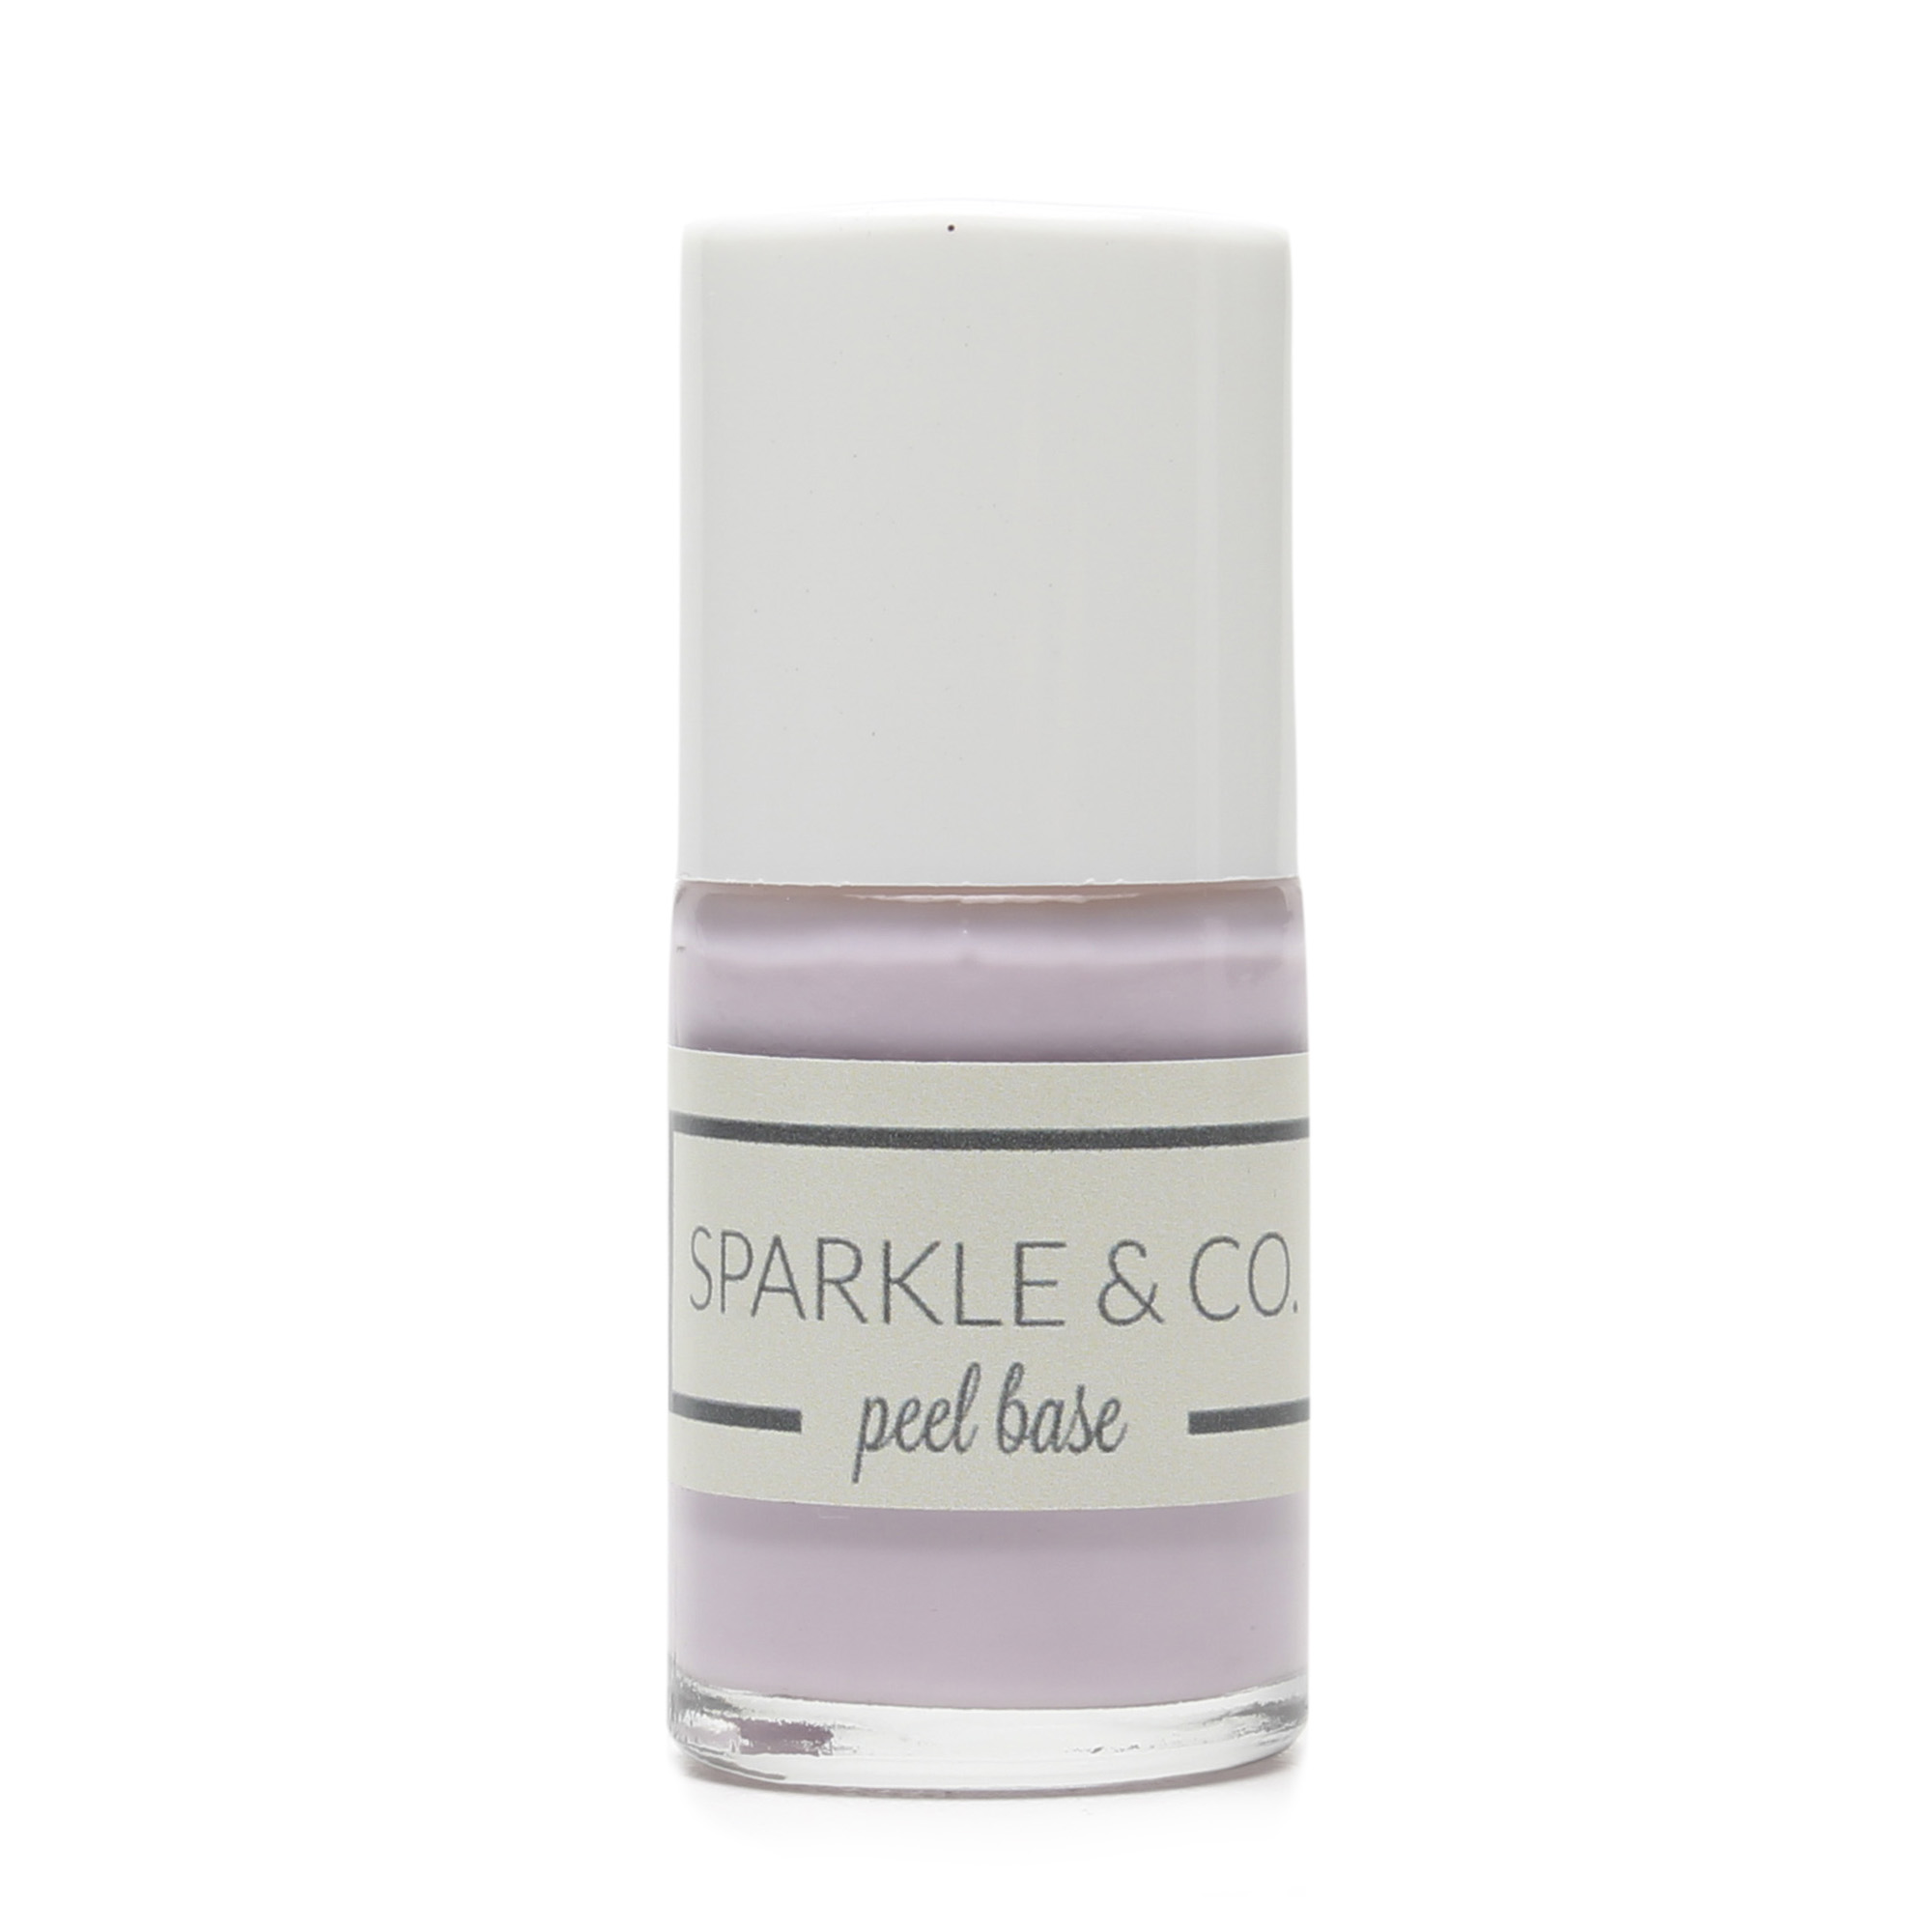 Sparkle & Co. Peel Base